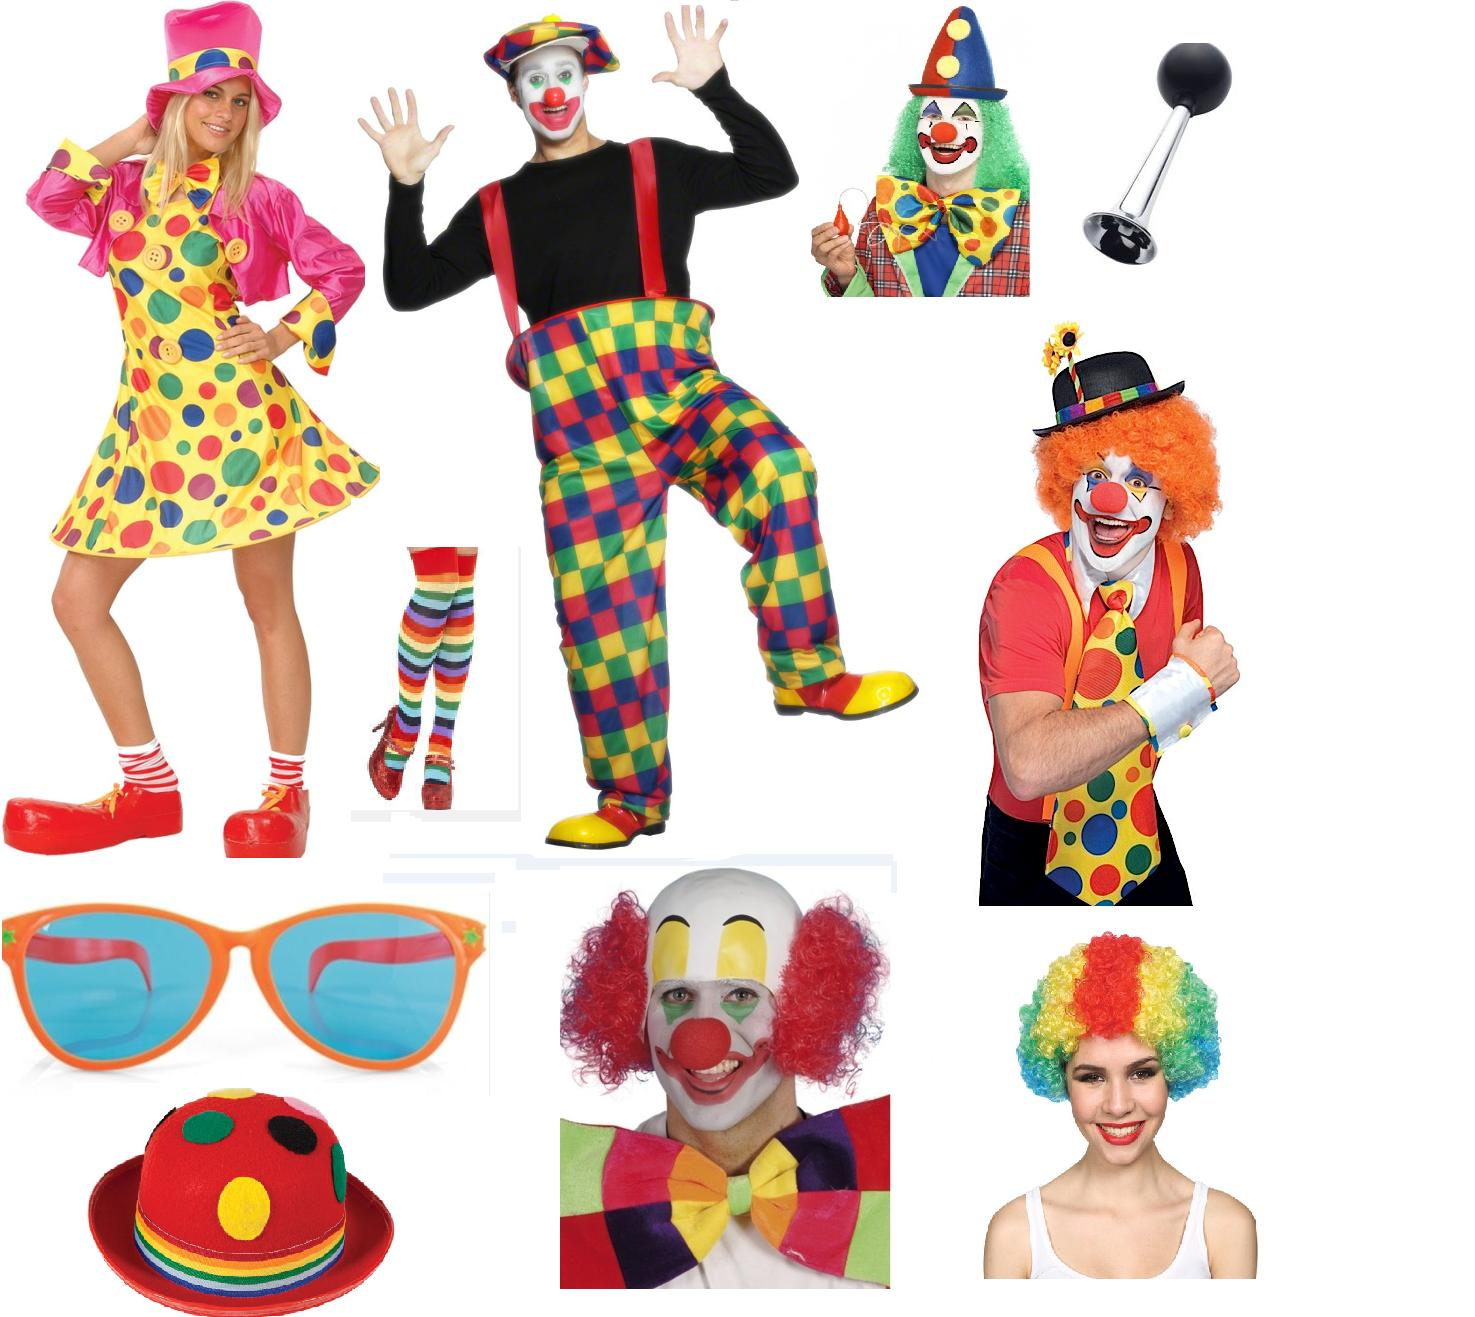 Pro Clown Wigs And Supplies - Discount Wig Supply